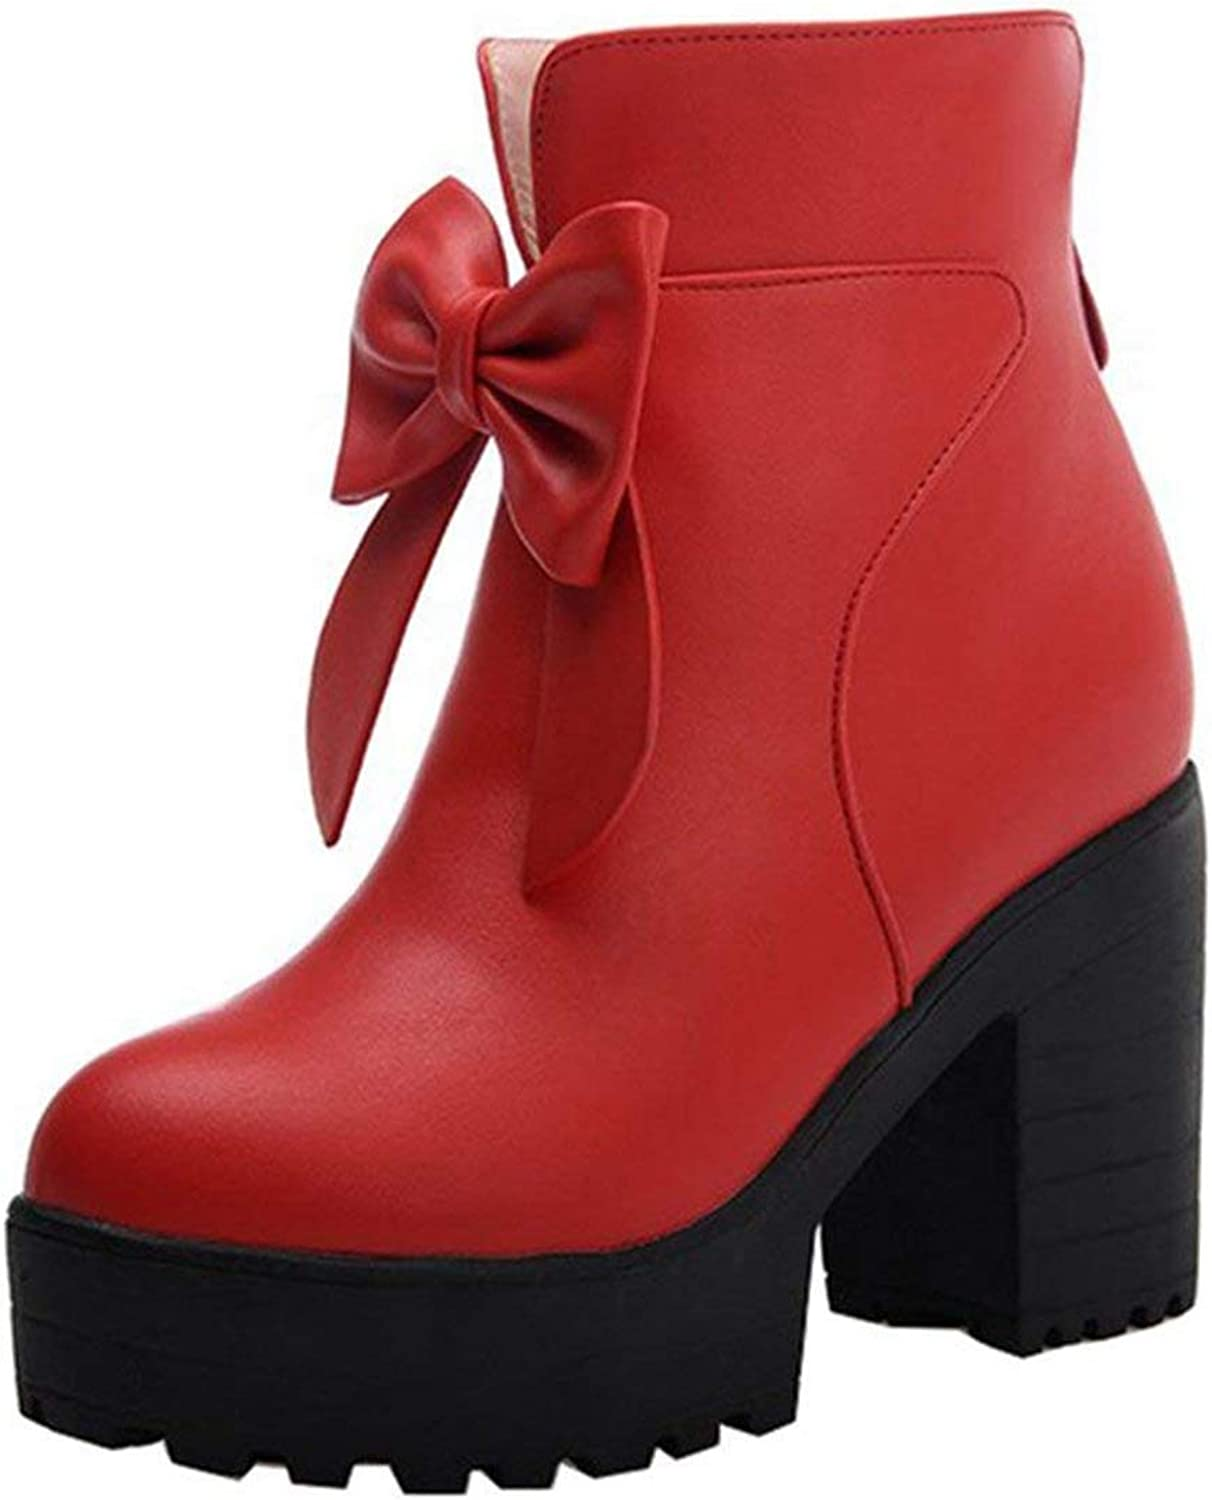 Vitalo Womens Chunky High Heel Platform Ankle Boots with Bow Zip Up Autumn Winter shoes